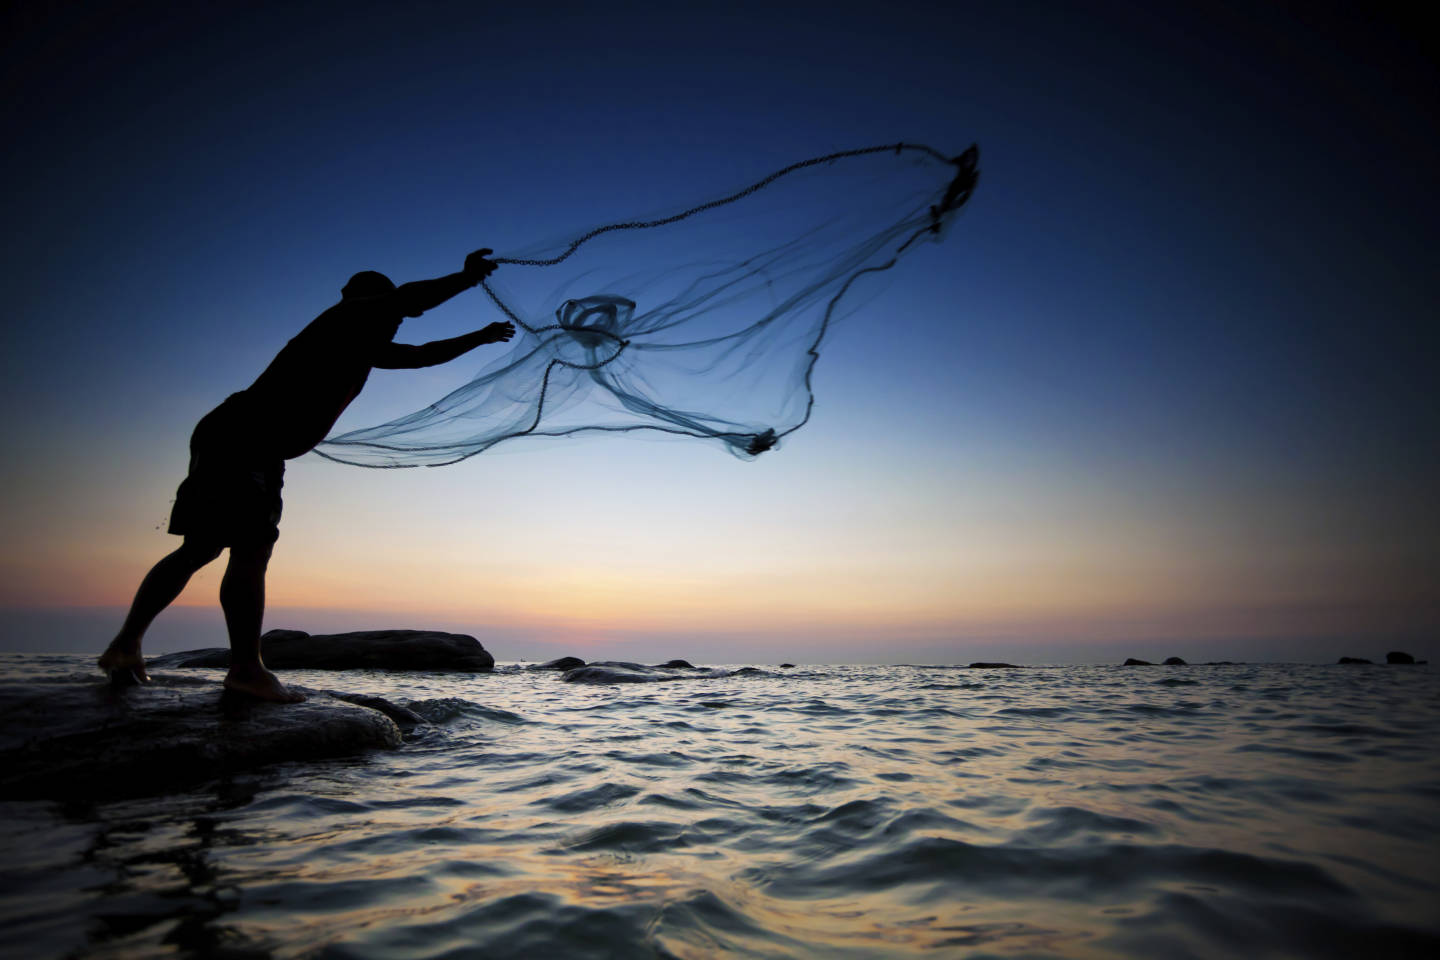 image of fisherman casting a net into the ocean